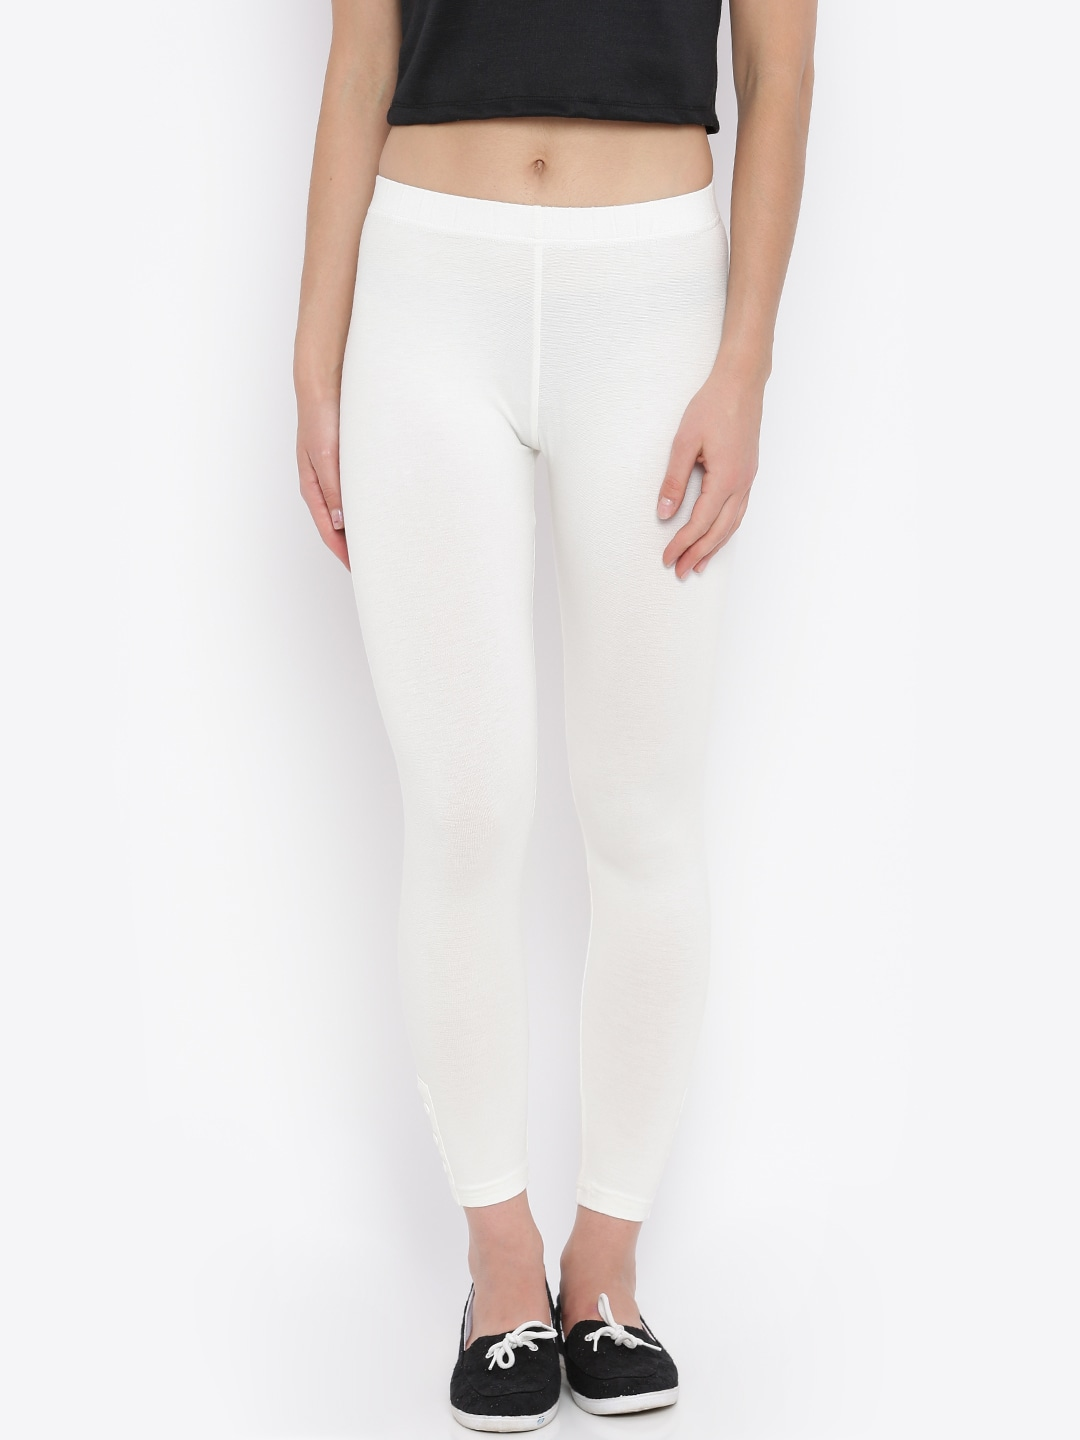 Buy AND Off White Ankle Length Leggings - Leggings for Women | Myntra